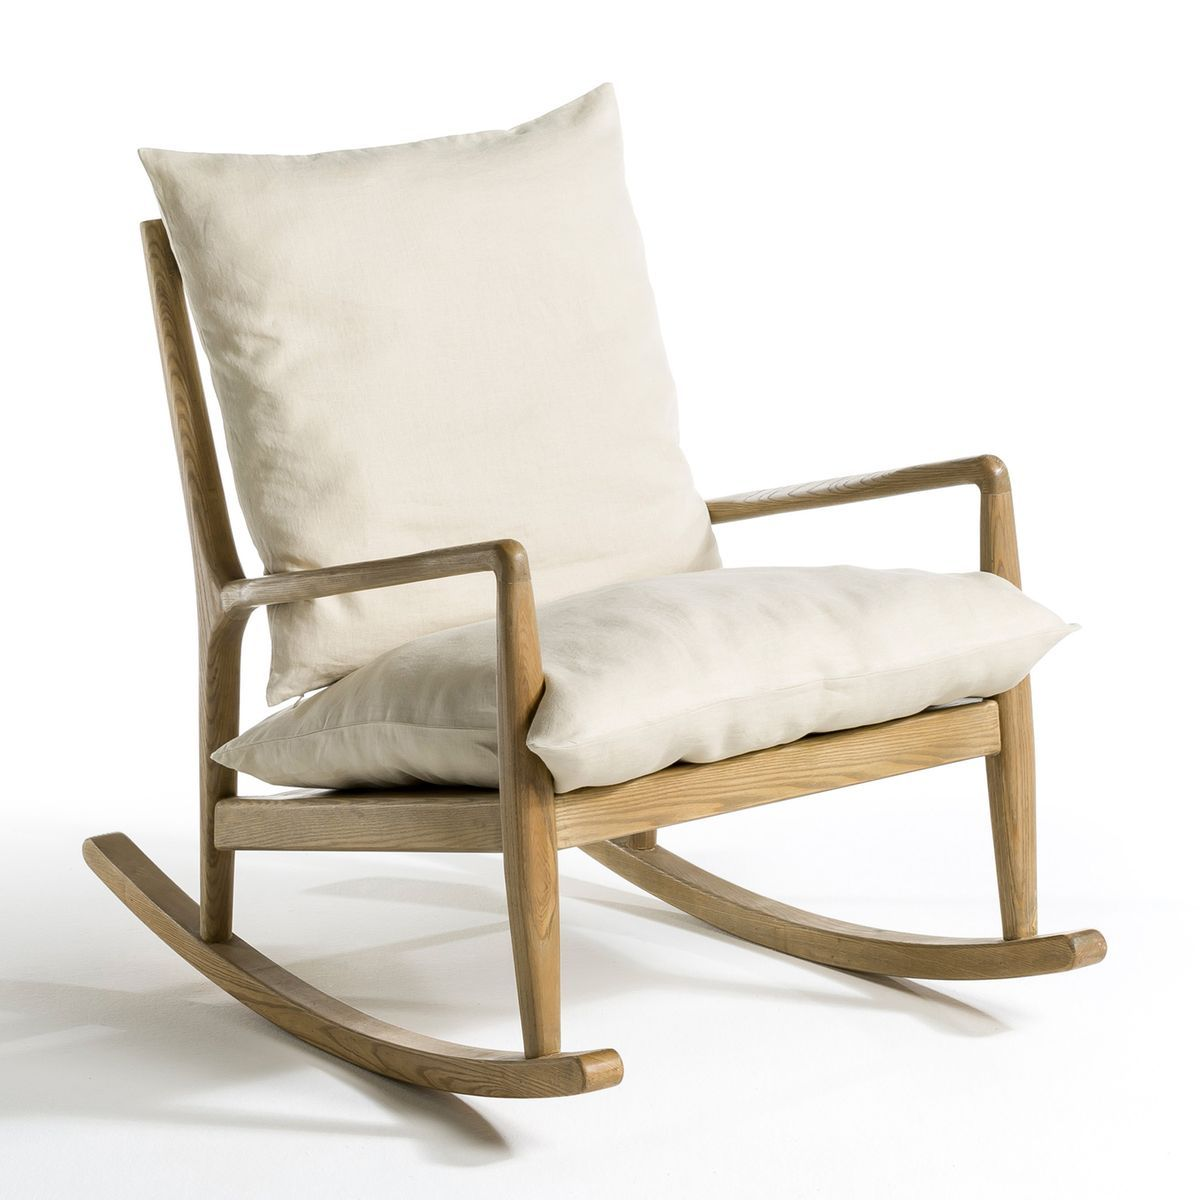 Captivating Explore Rocking Chairs, Rocks, And More! Nice Ideas